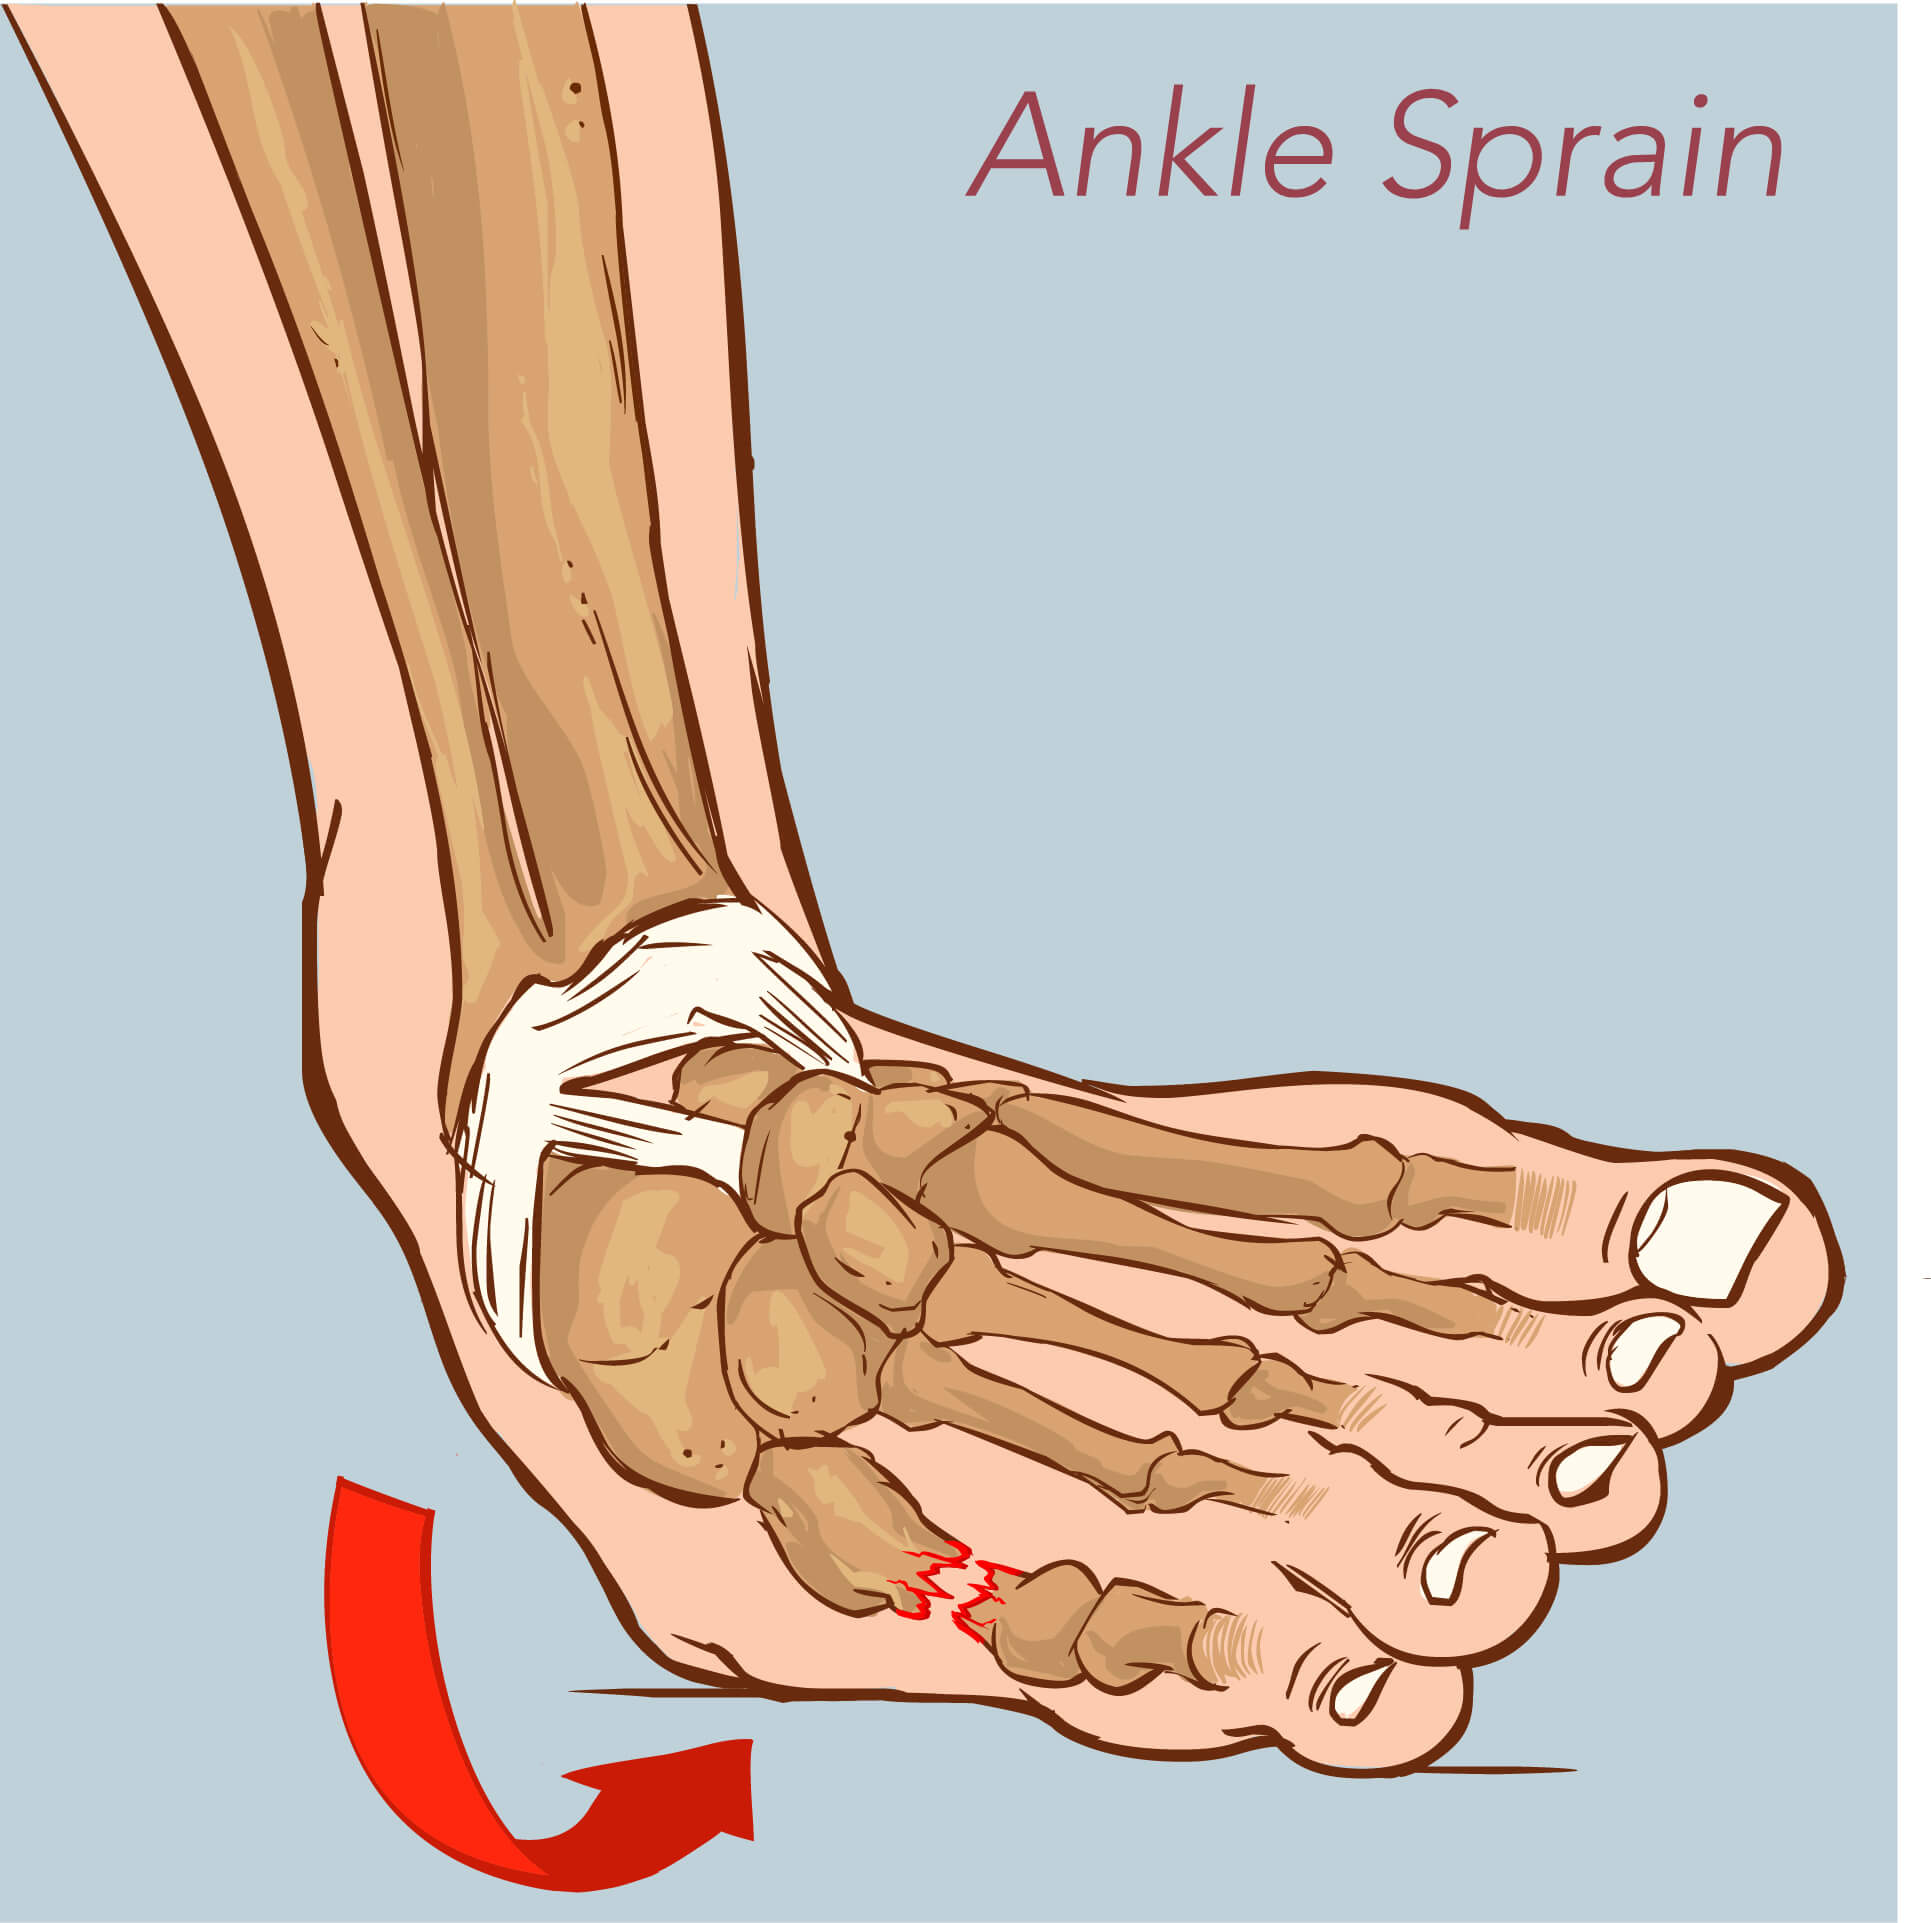 Image of a rolled ankle resulting in a sprain